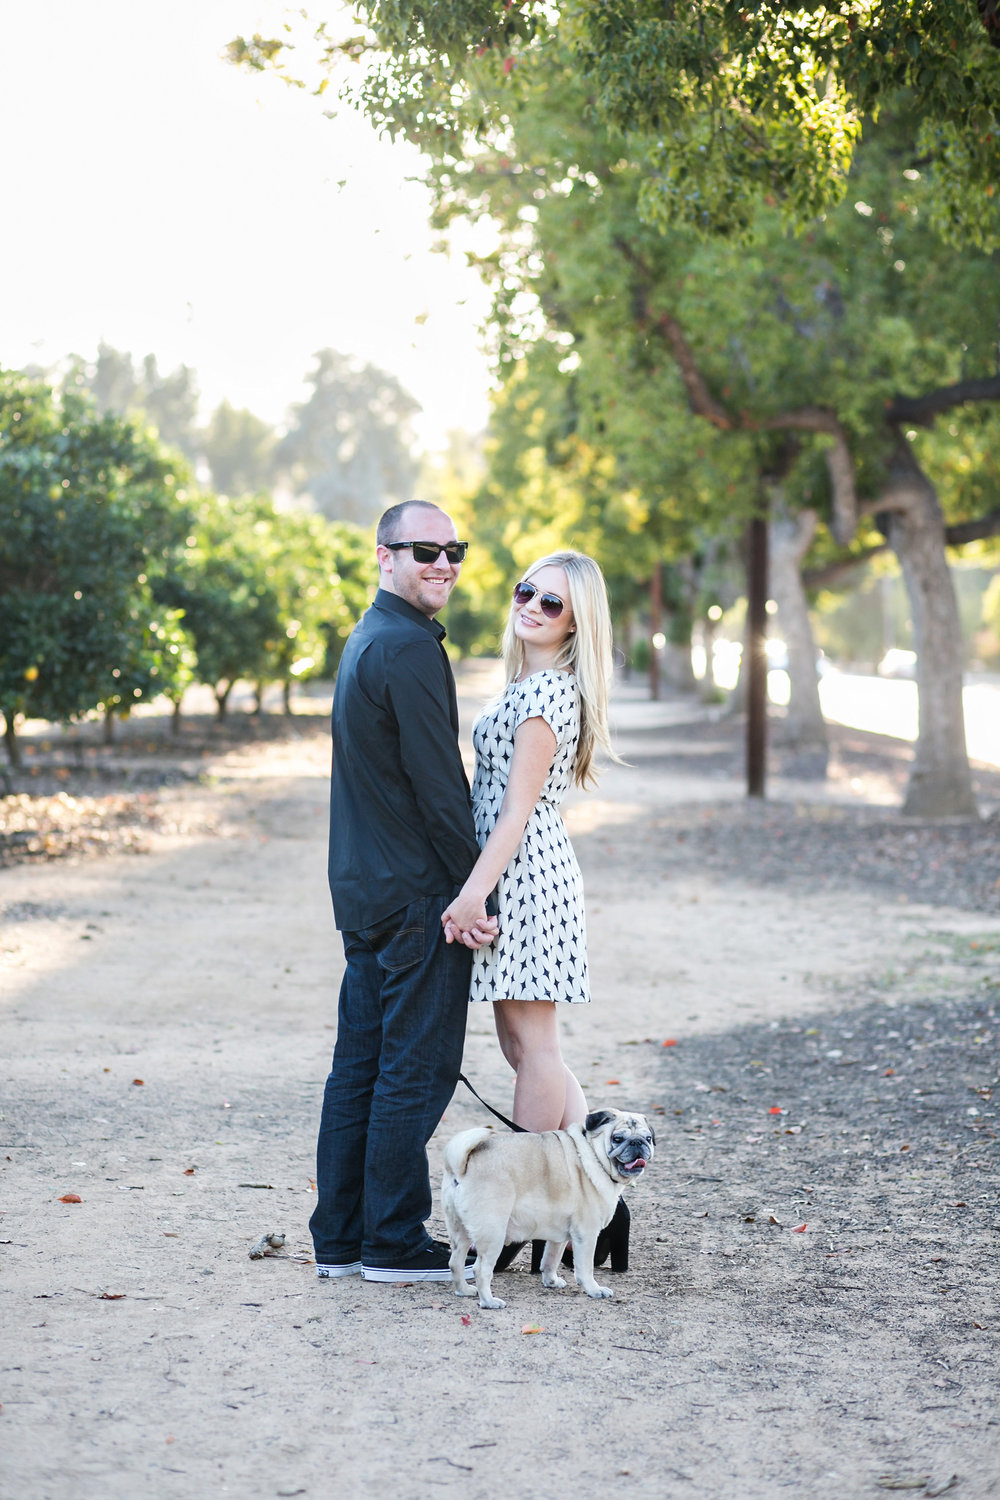 alex-amanda-redlands-engagement-session-004.jpg